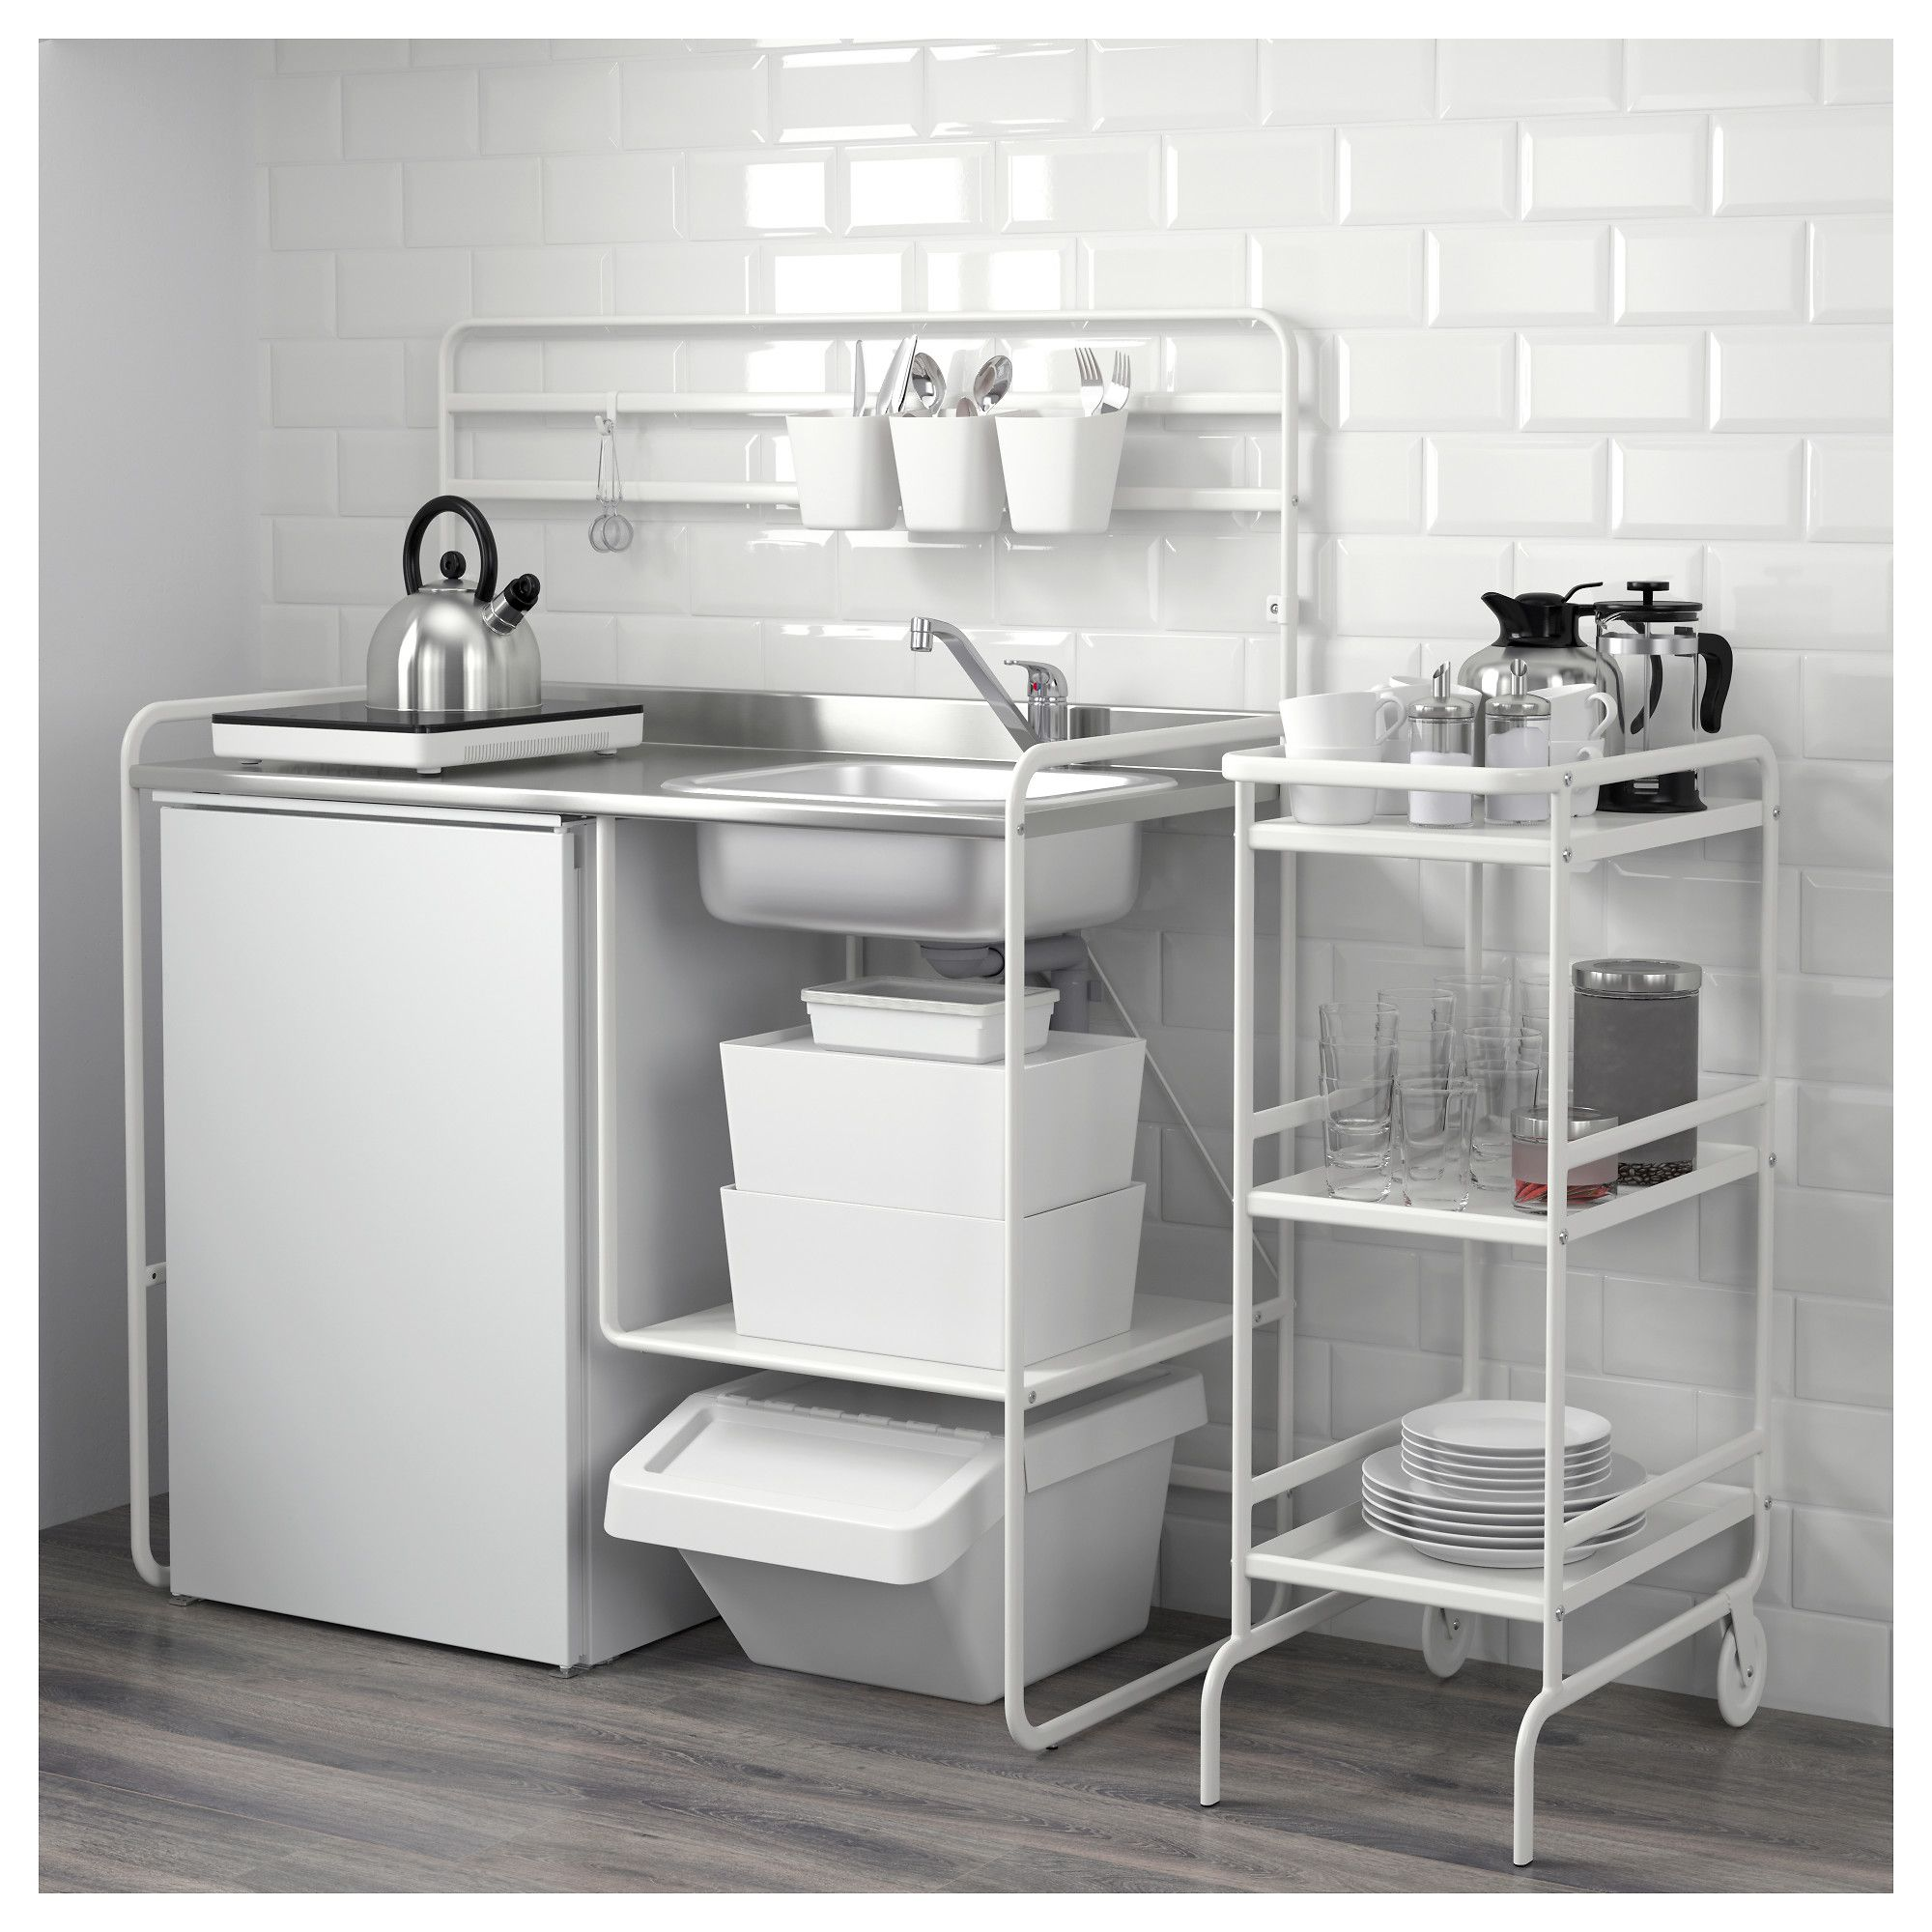 Ikea Mini Kitchen: IKEA - SUNNERSTA Mini-kitchen In 2019